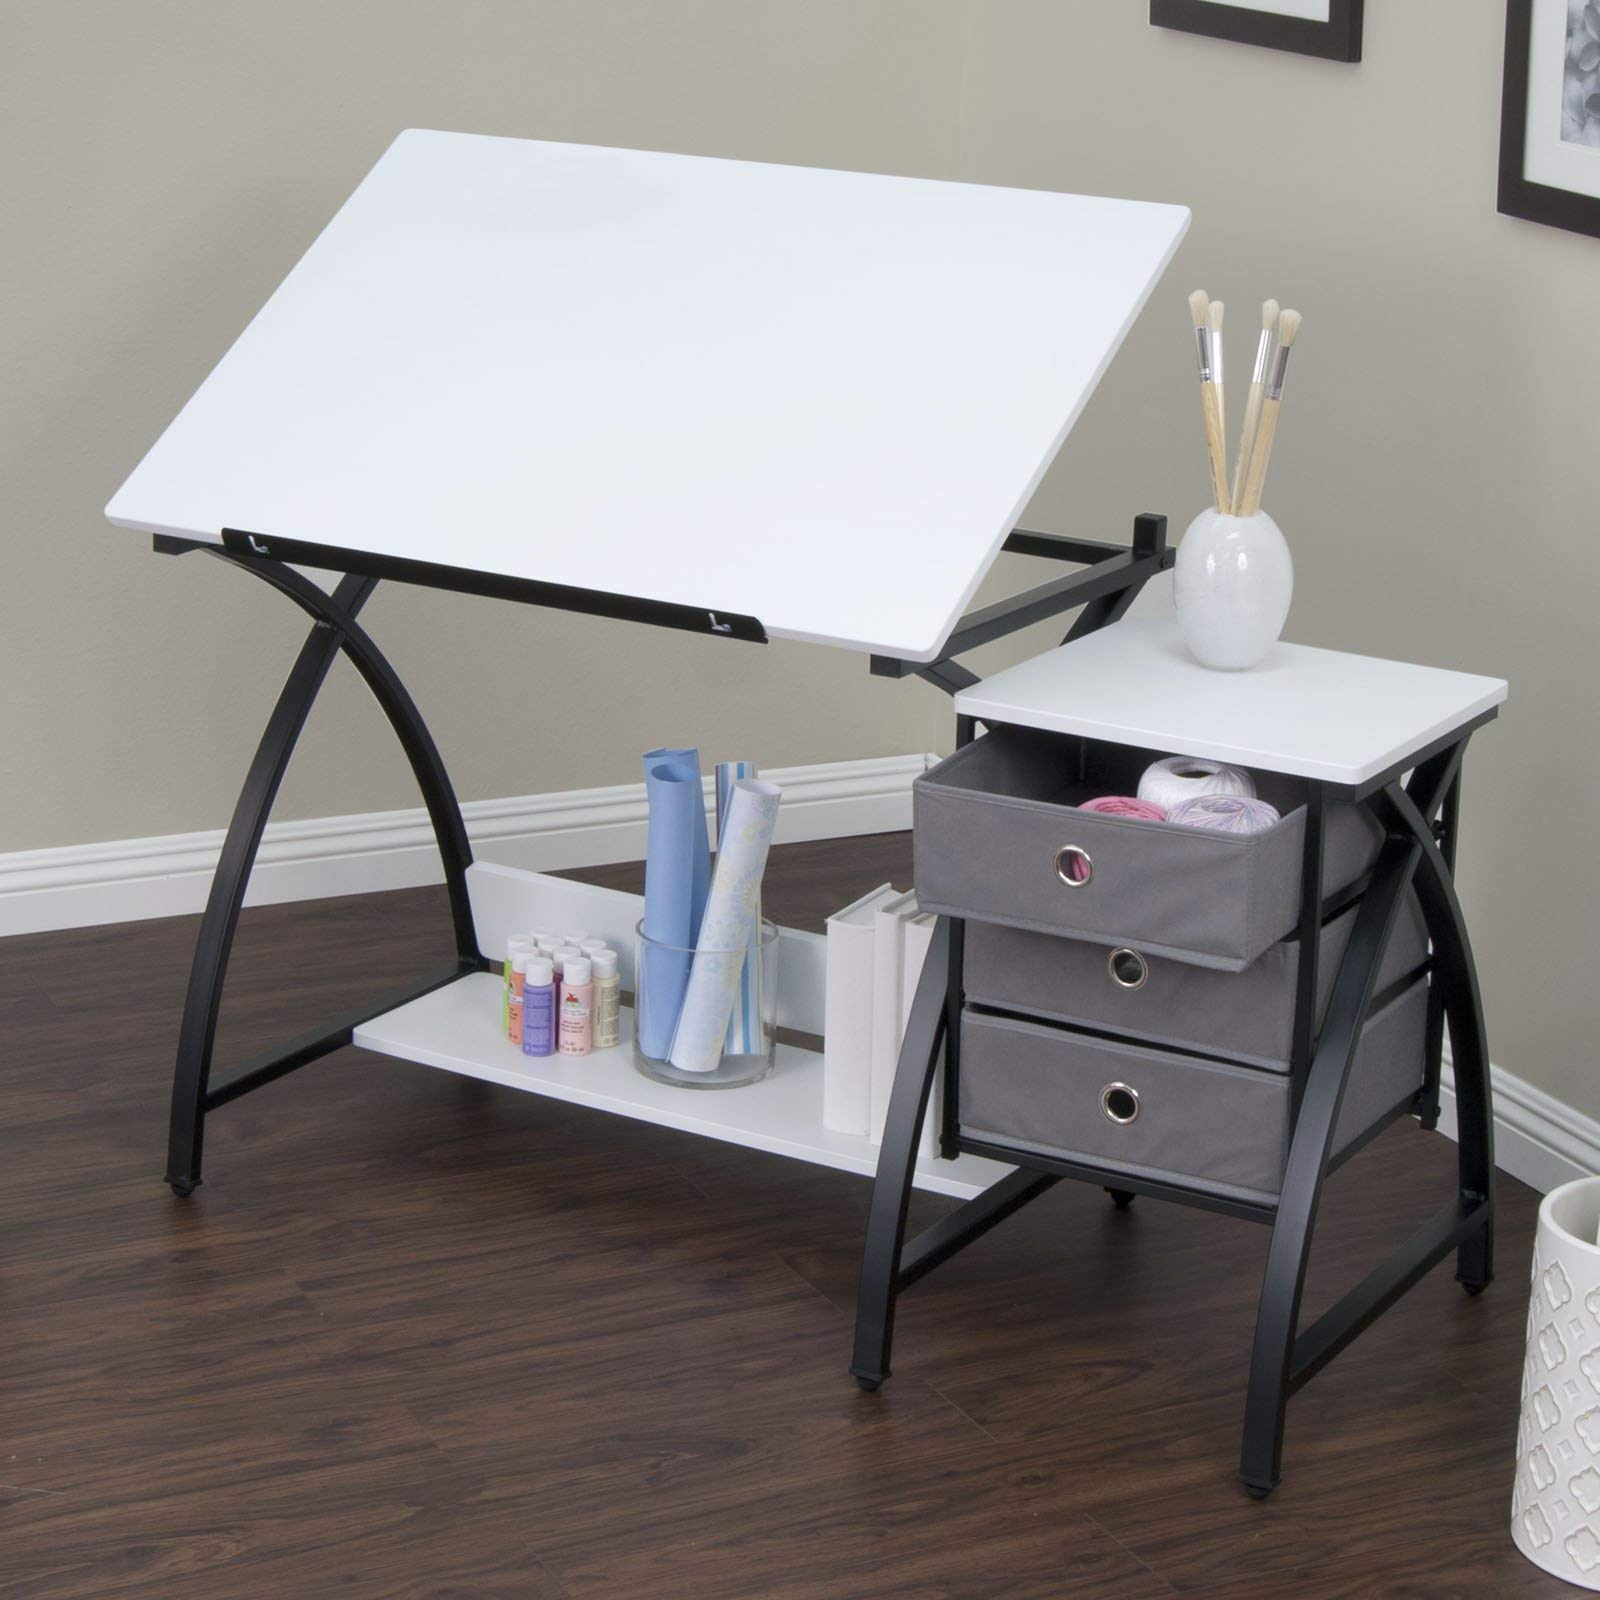 Studio Designs 13326 Comet Center with Stool, Black/White by SD STUDIO DESIGNS (Image #2)